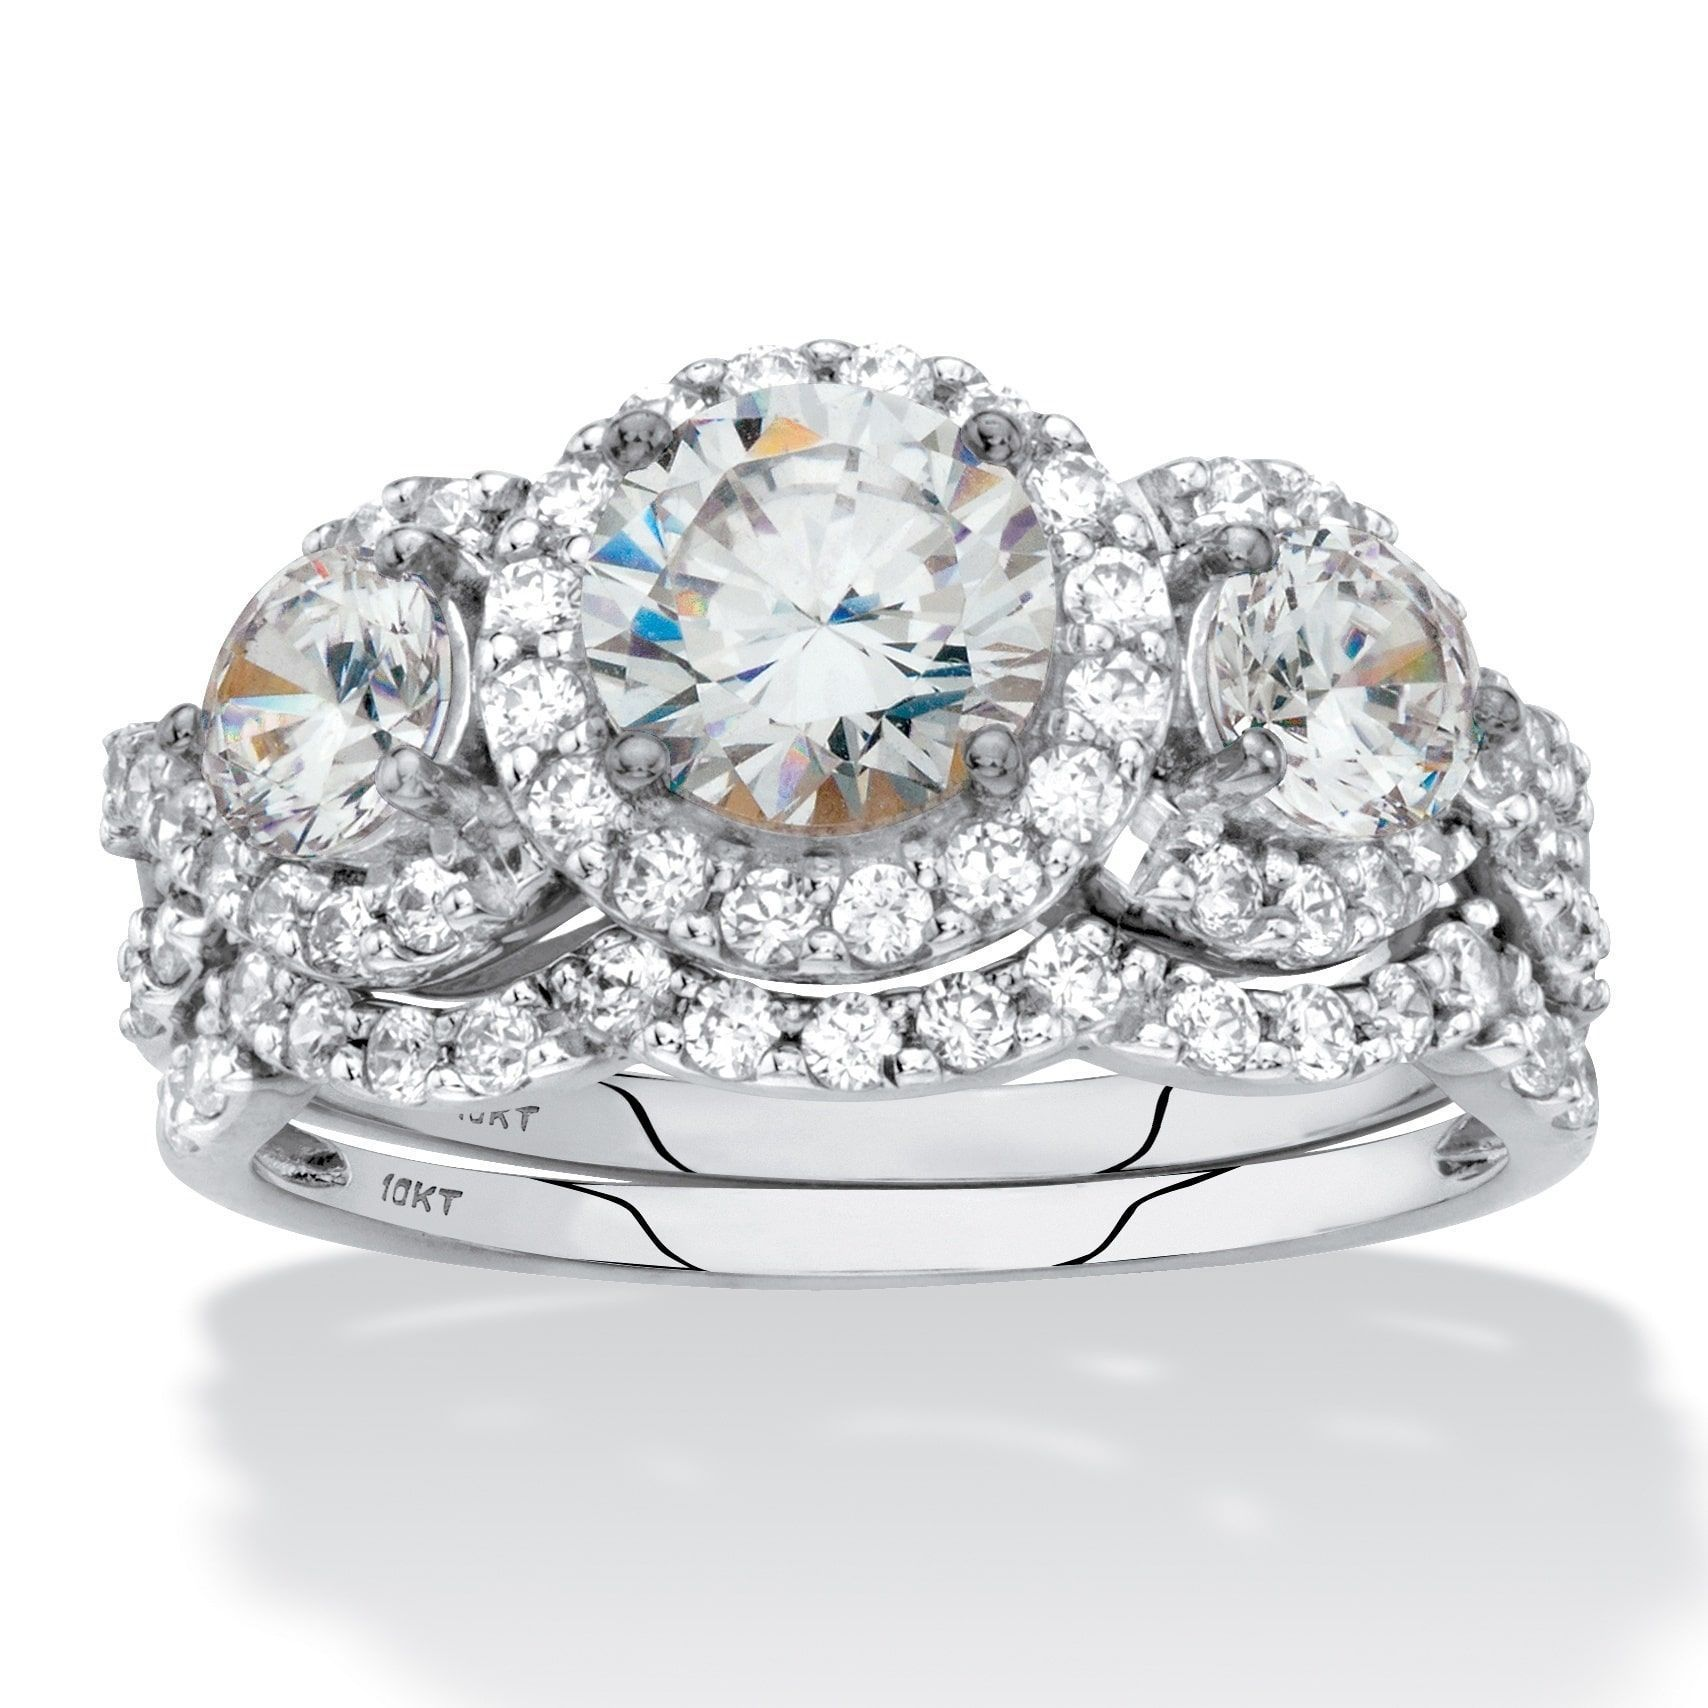 Merveilleux Palm Beach Jewelry Round Cubic Zirconia 2 Piece Triple Halo Wedding Ring  Set 2.95 TCW